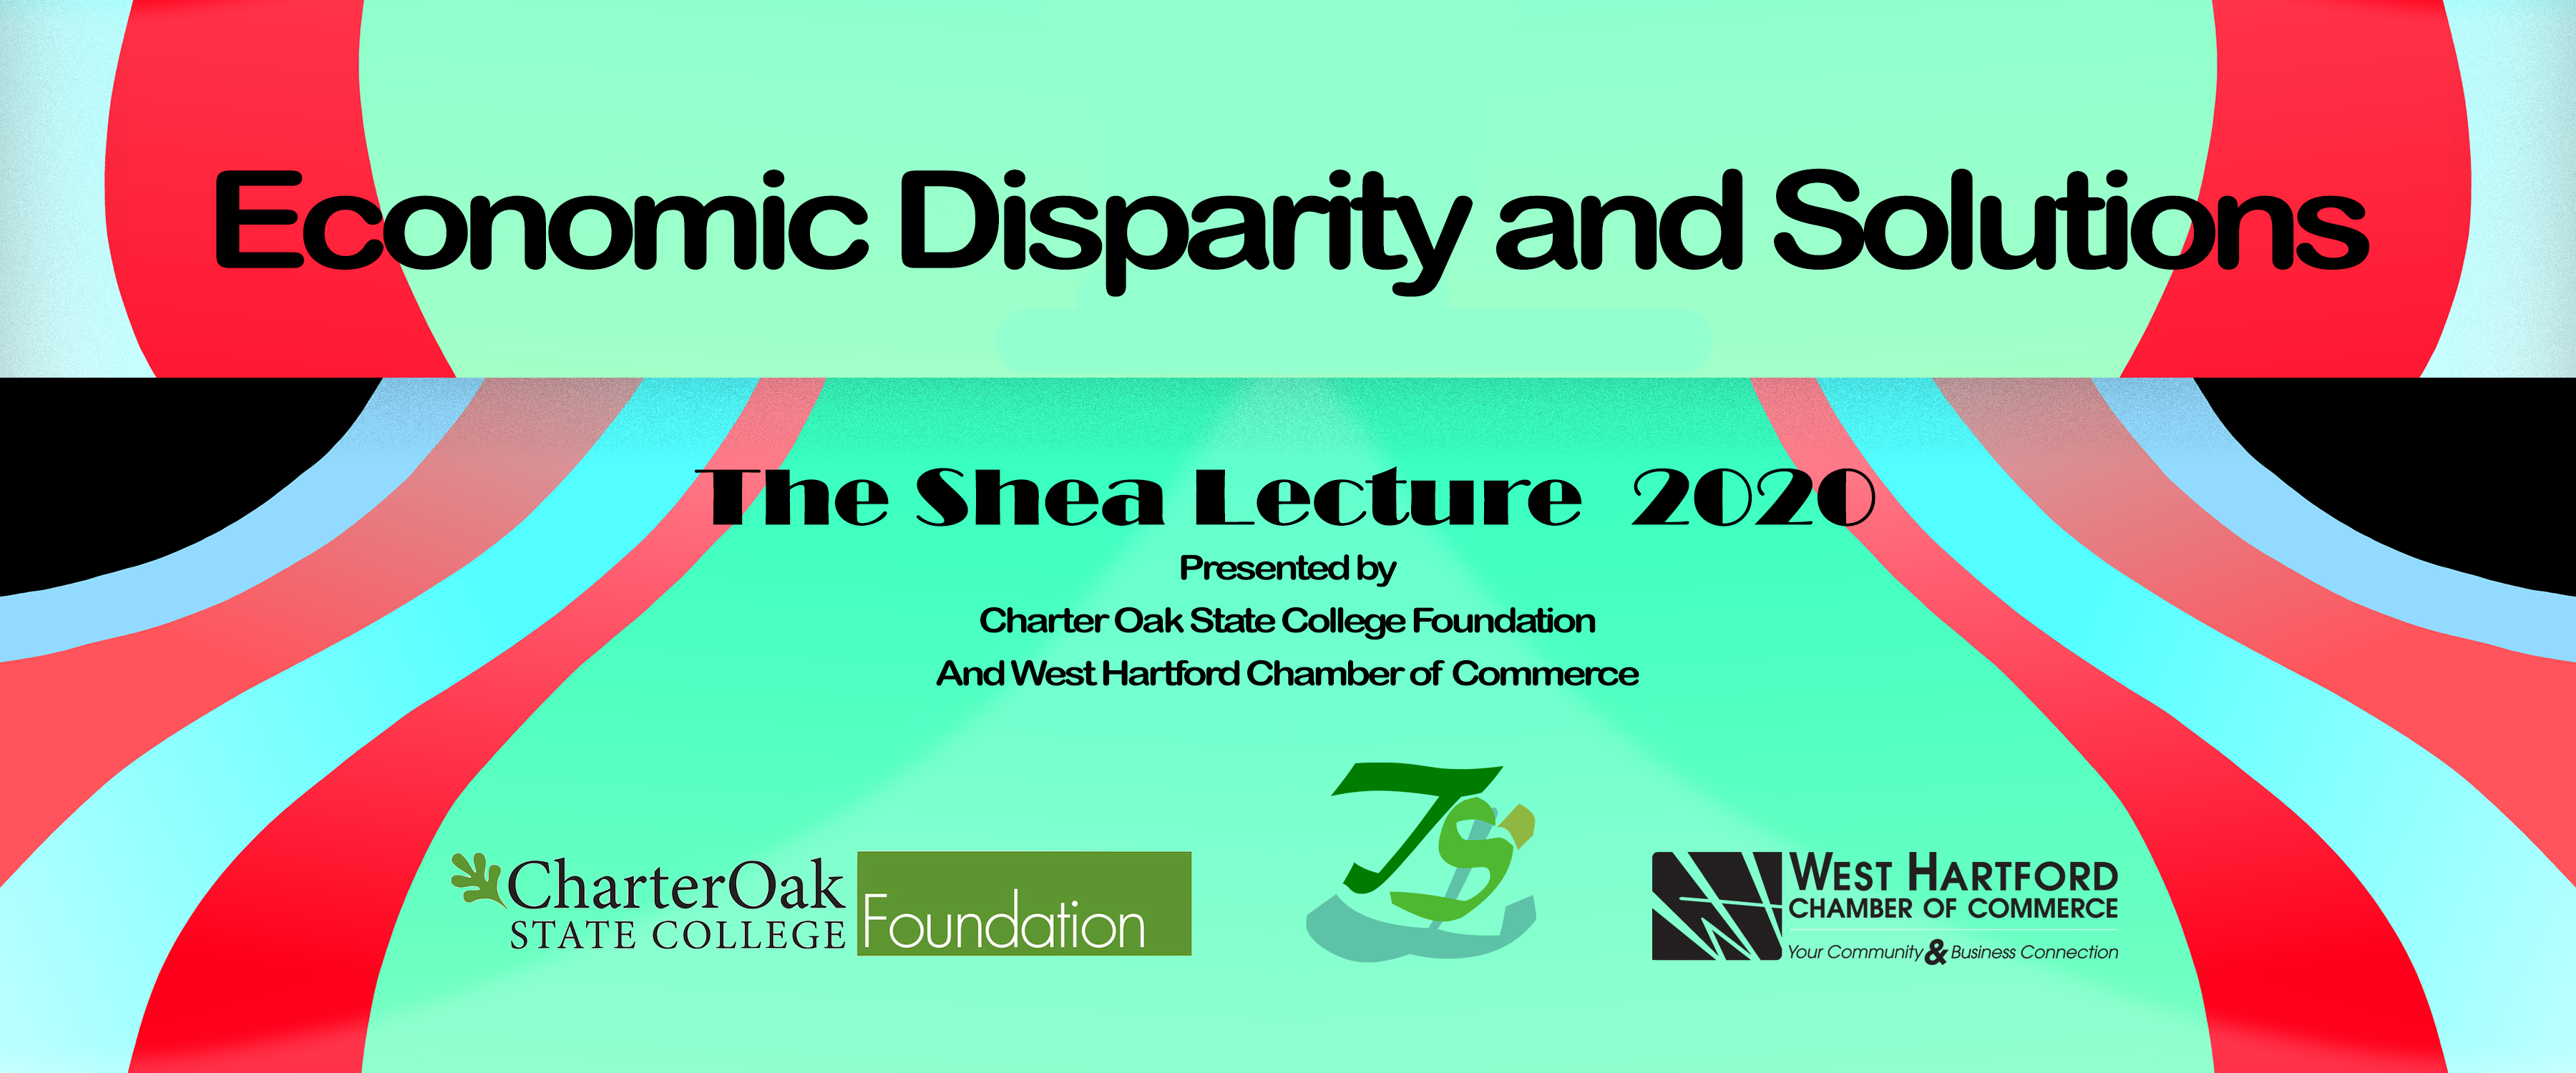 The Shea Lecture September 17 2020